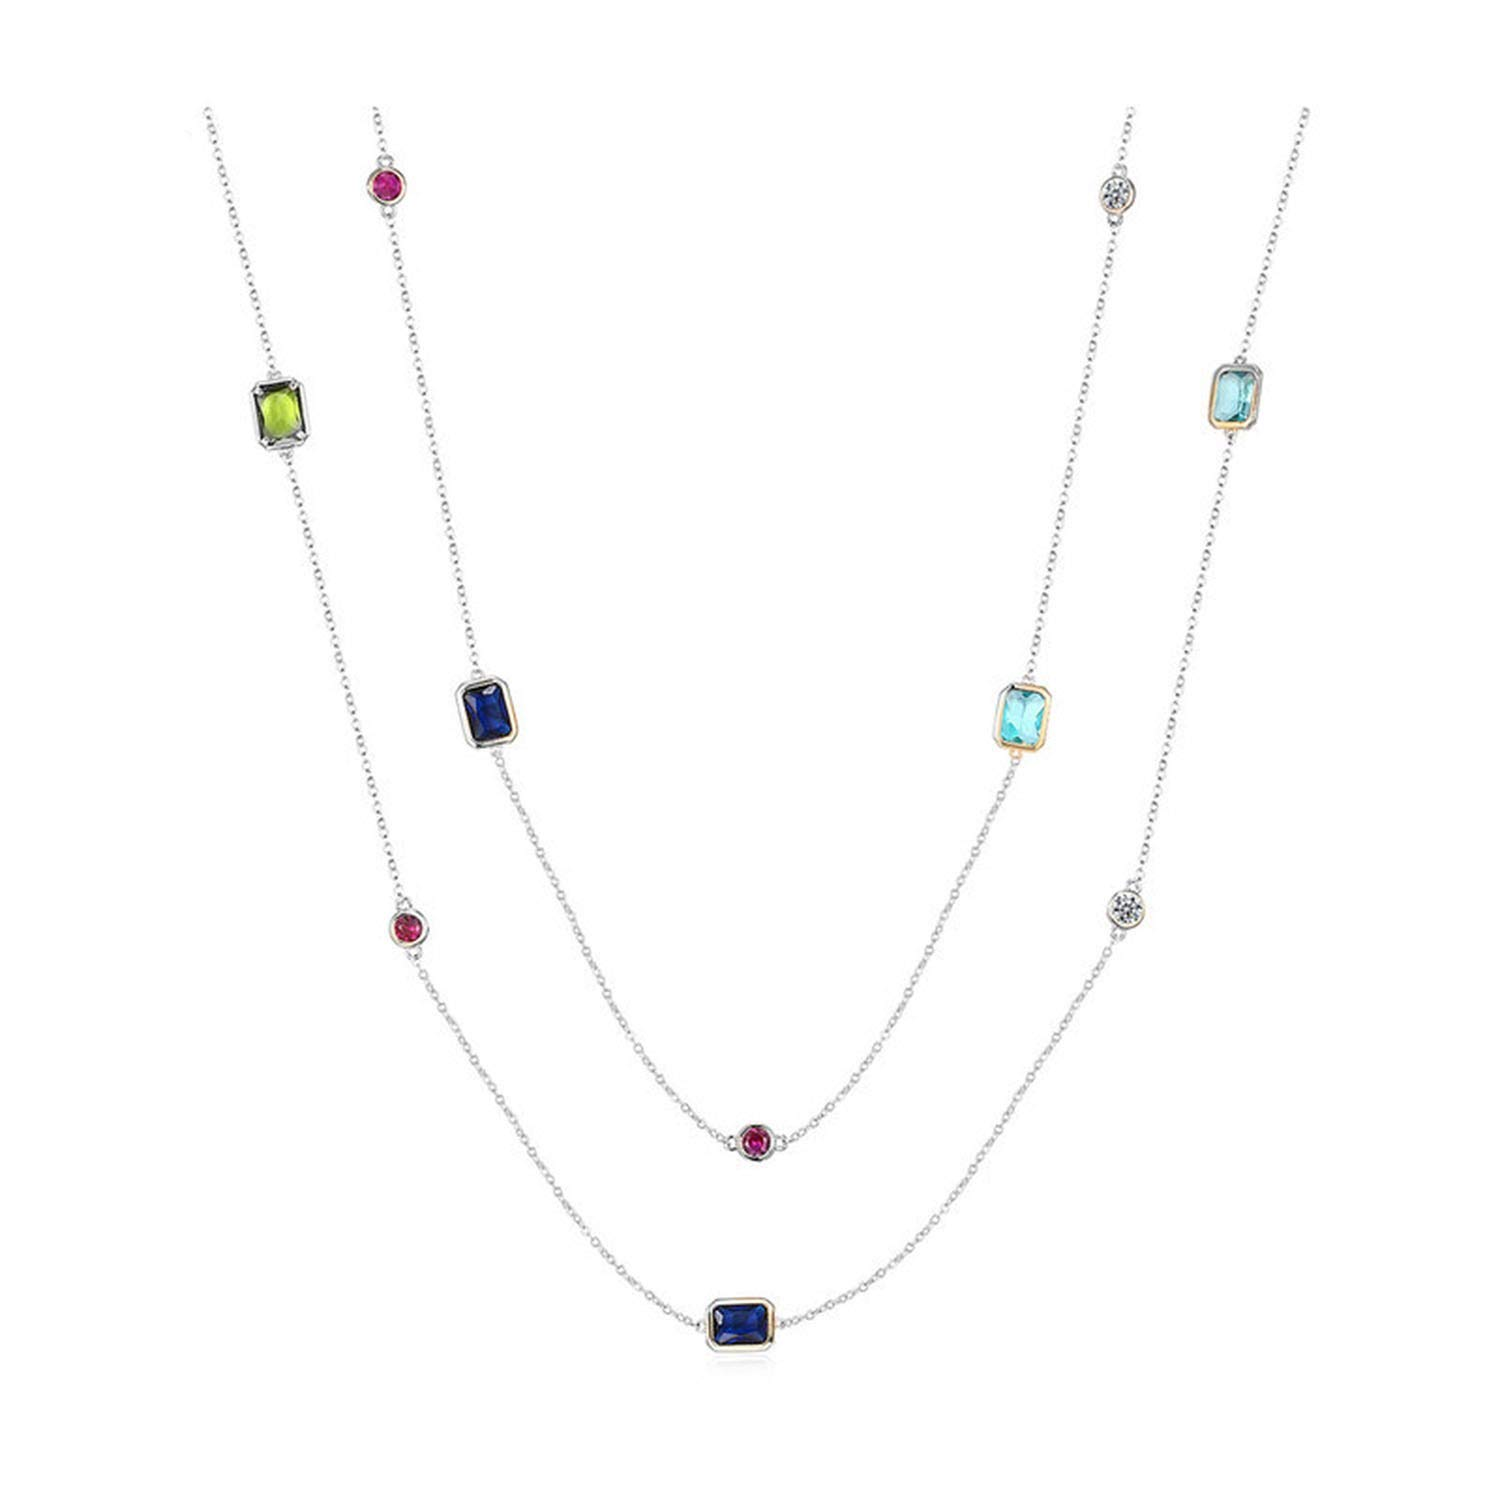 Waroom-Store Multicolour Crystal Stones Necklace,Women Colourful Long Sweater Chain Dress Party Accessories